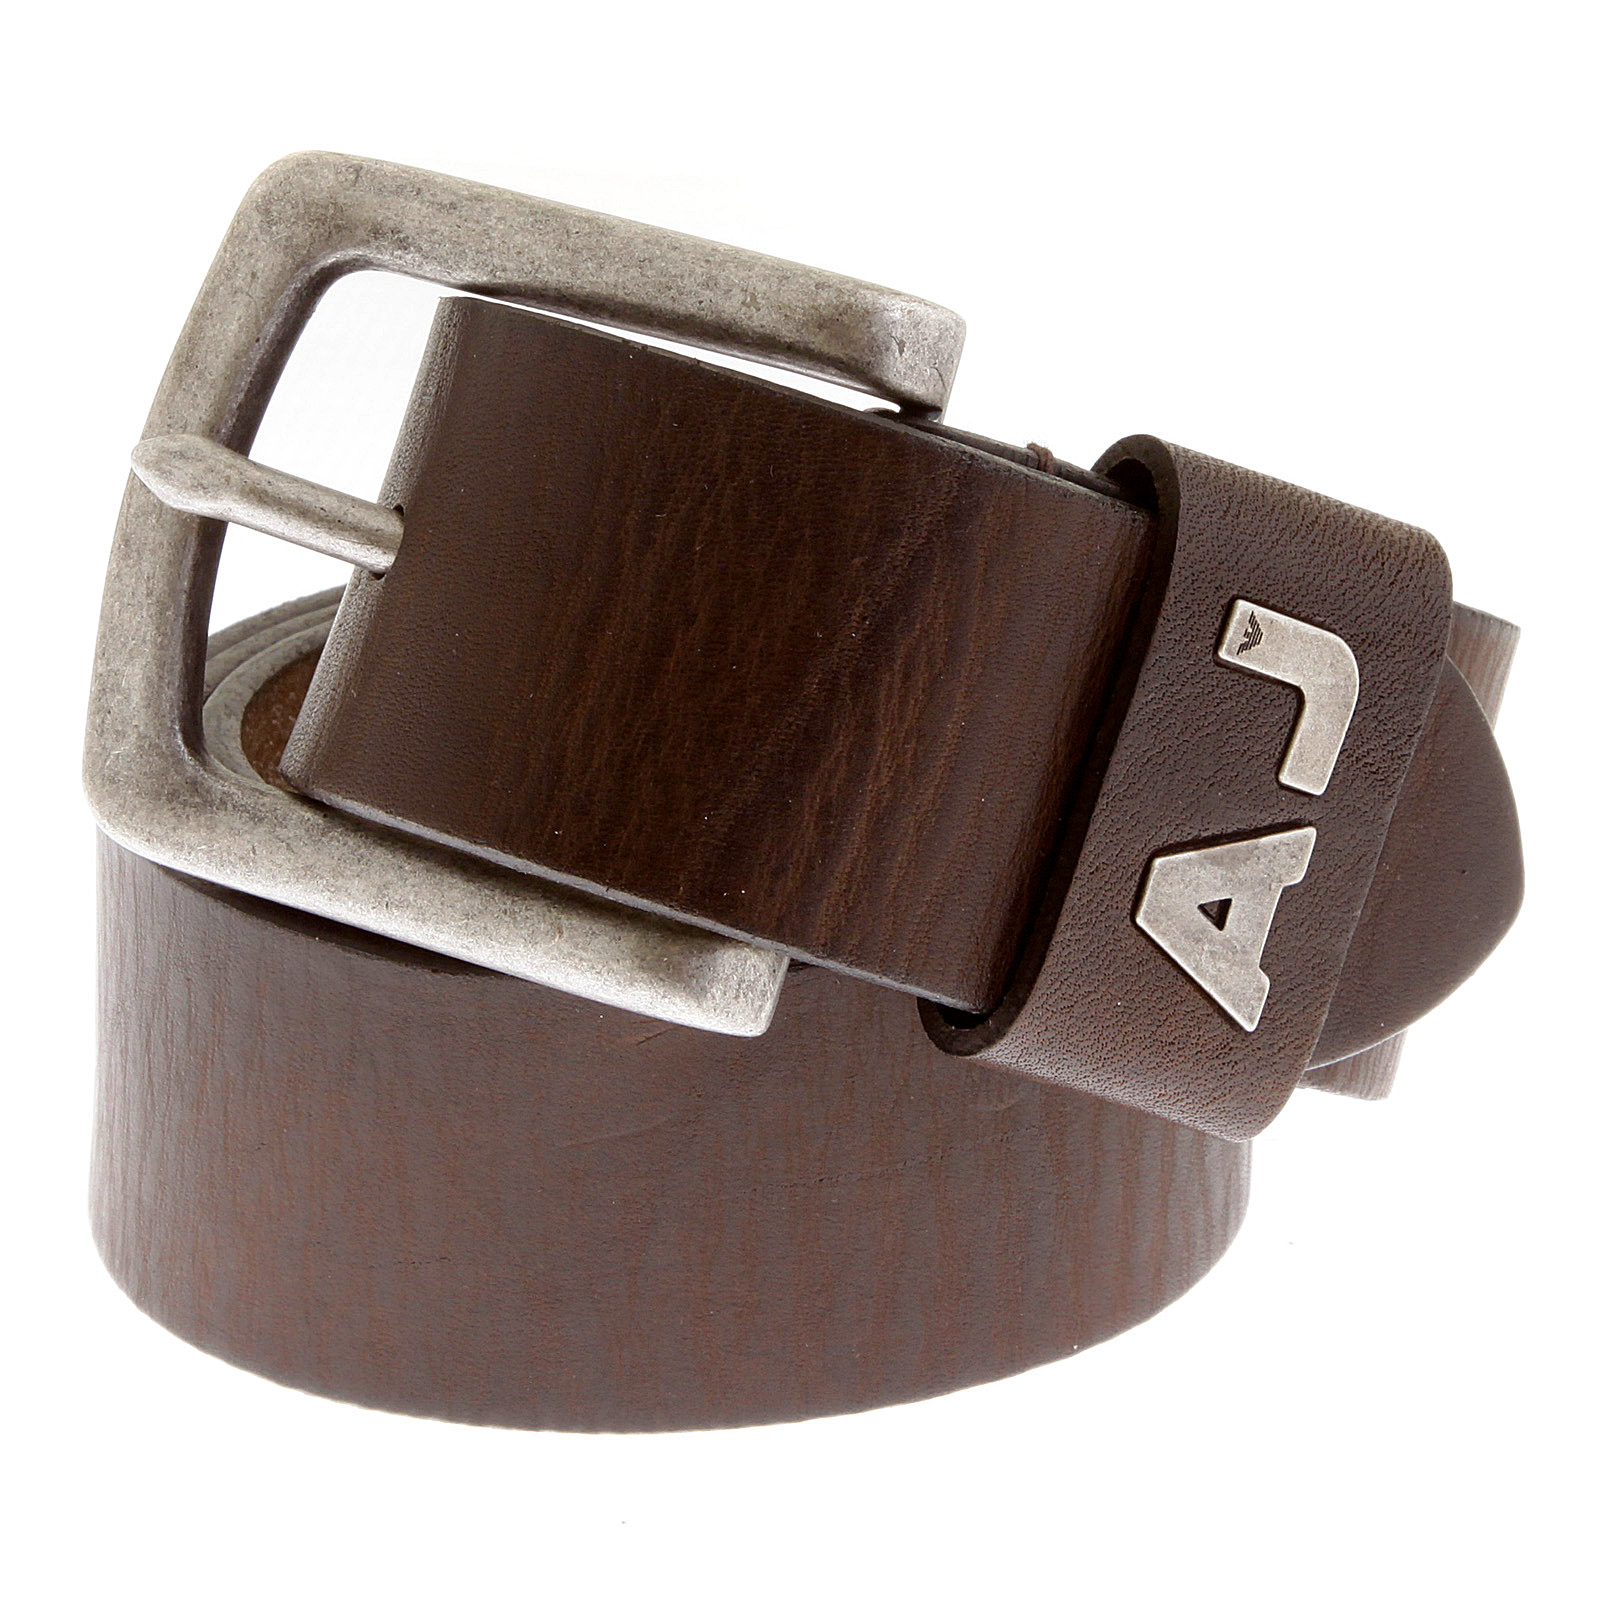 armani m611 675 chocolate brown leather belt ajm2216